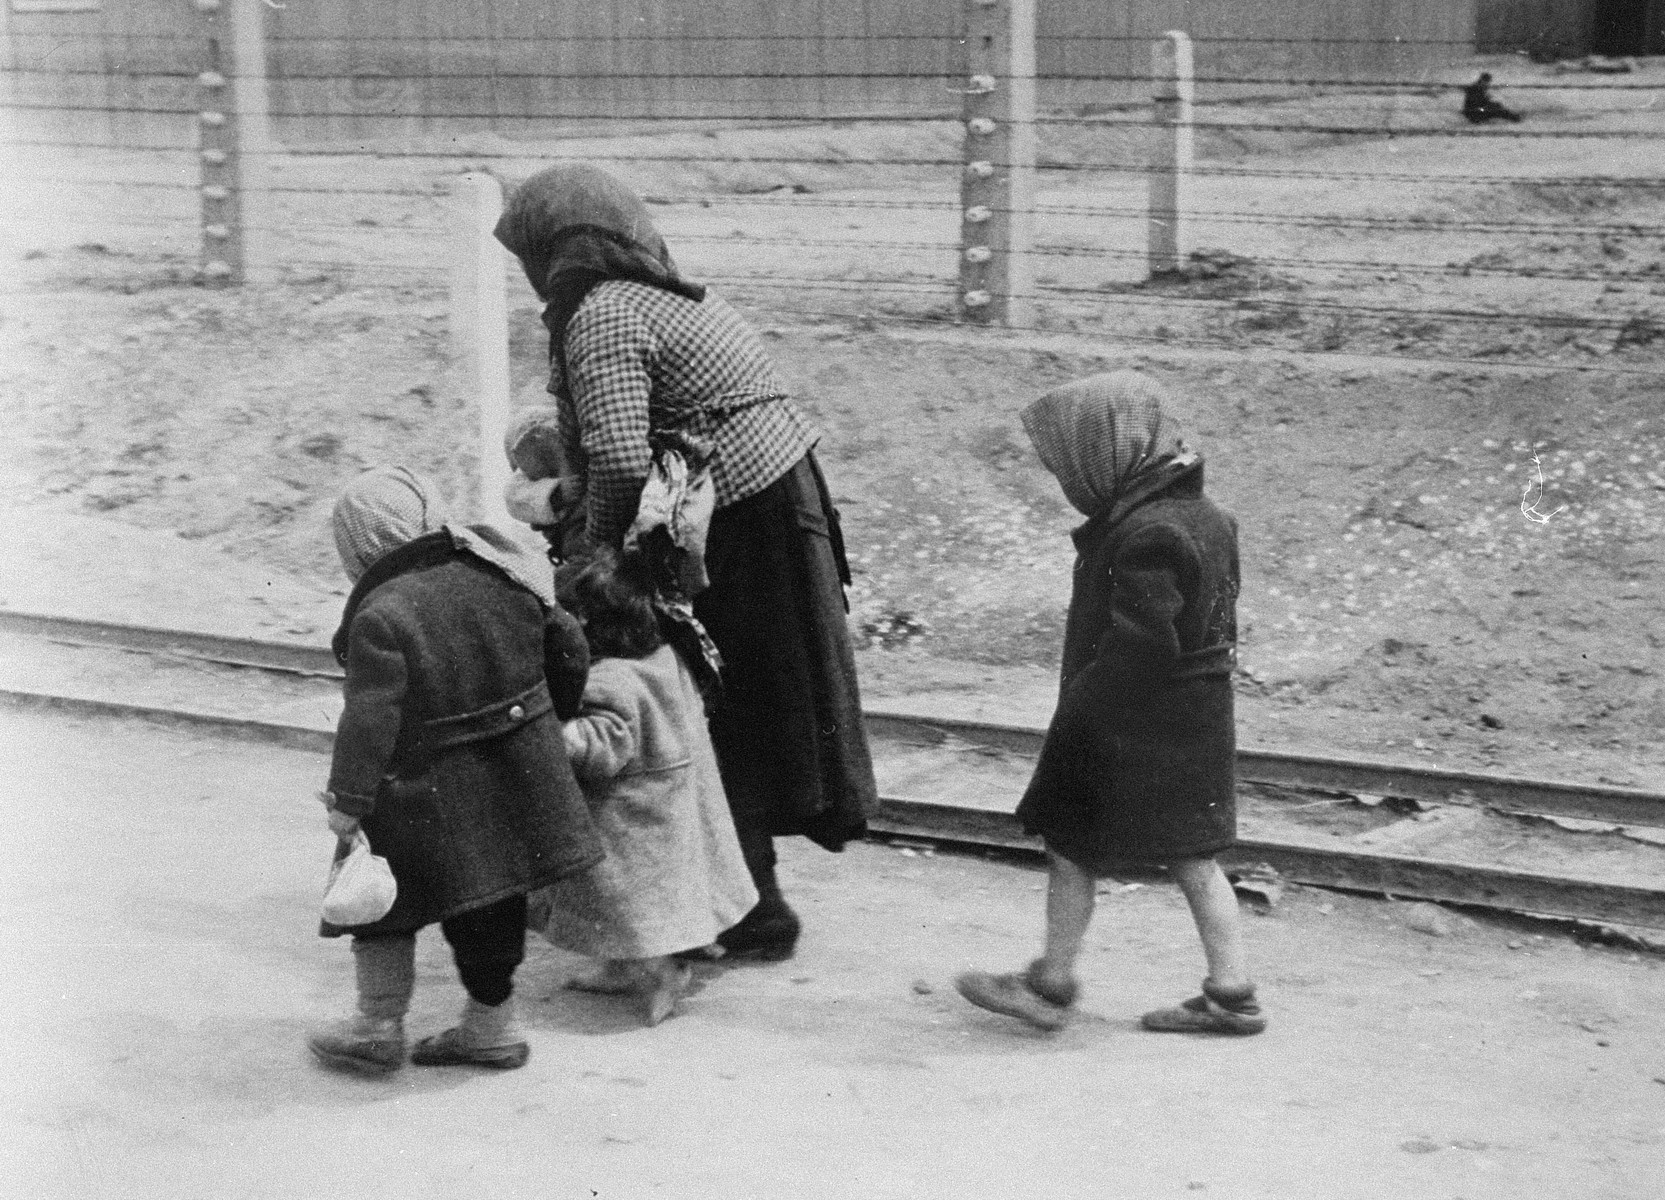 A Jewish woman walks towards the gas chambers with three young children and a baby in her arms, after going through the selection process on the ramp at Auschwitz-Birkenau.